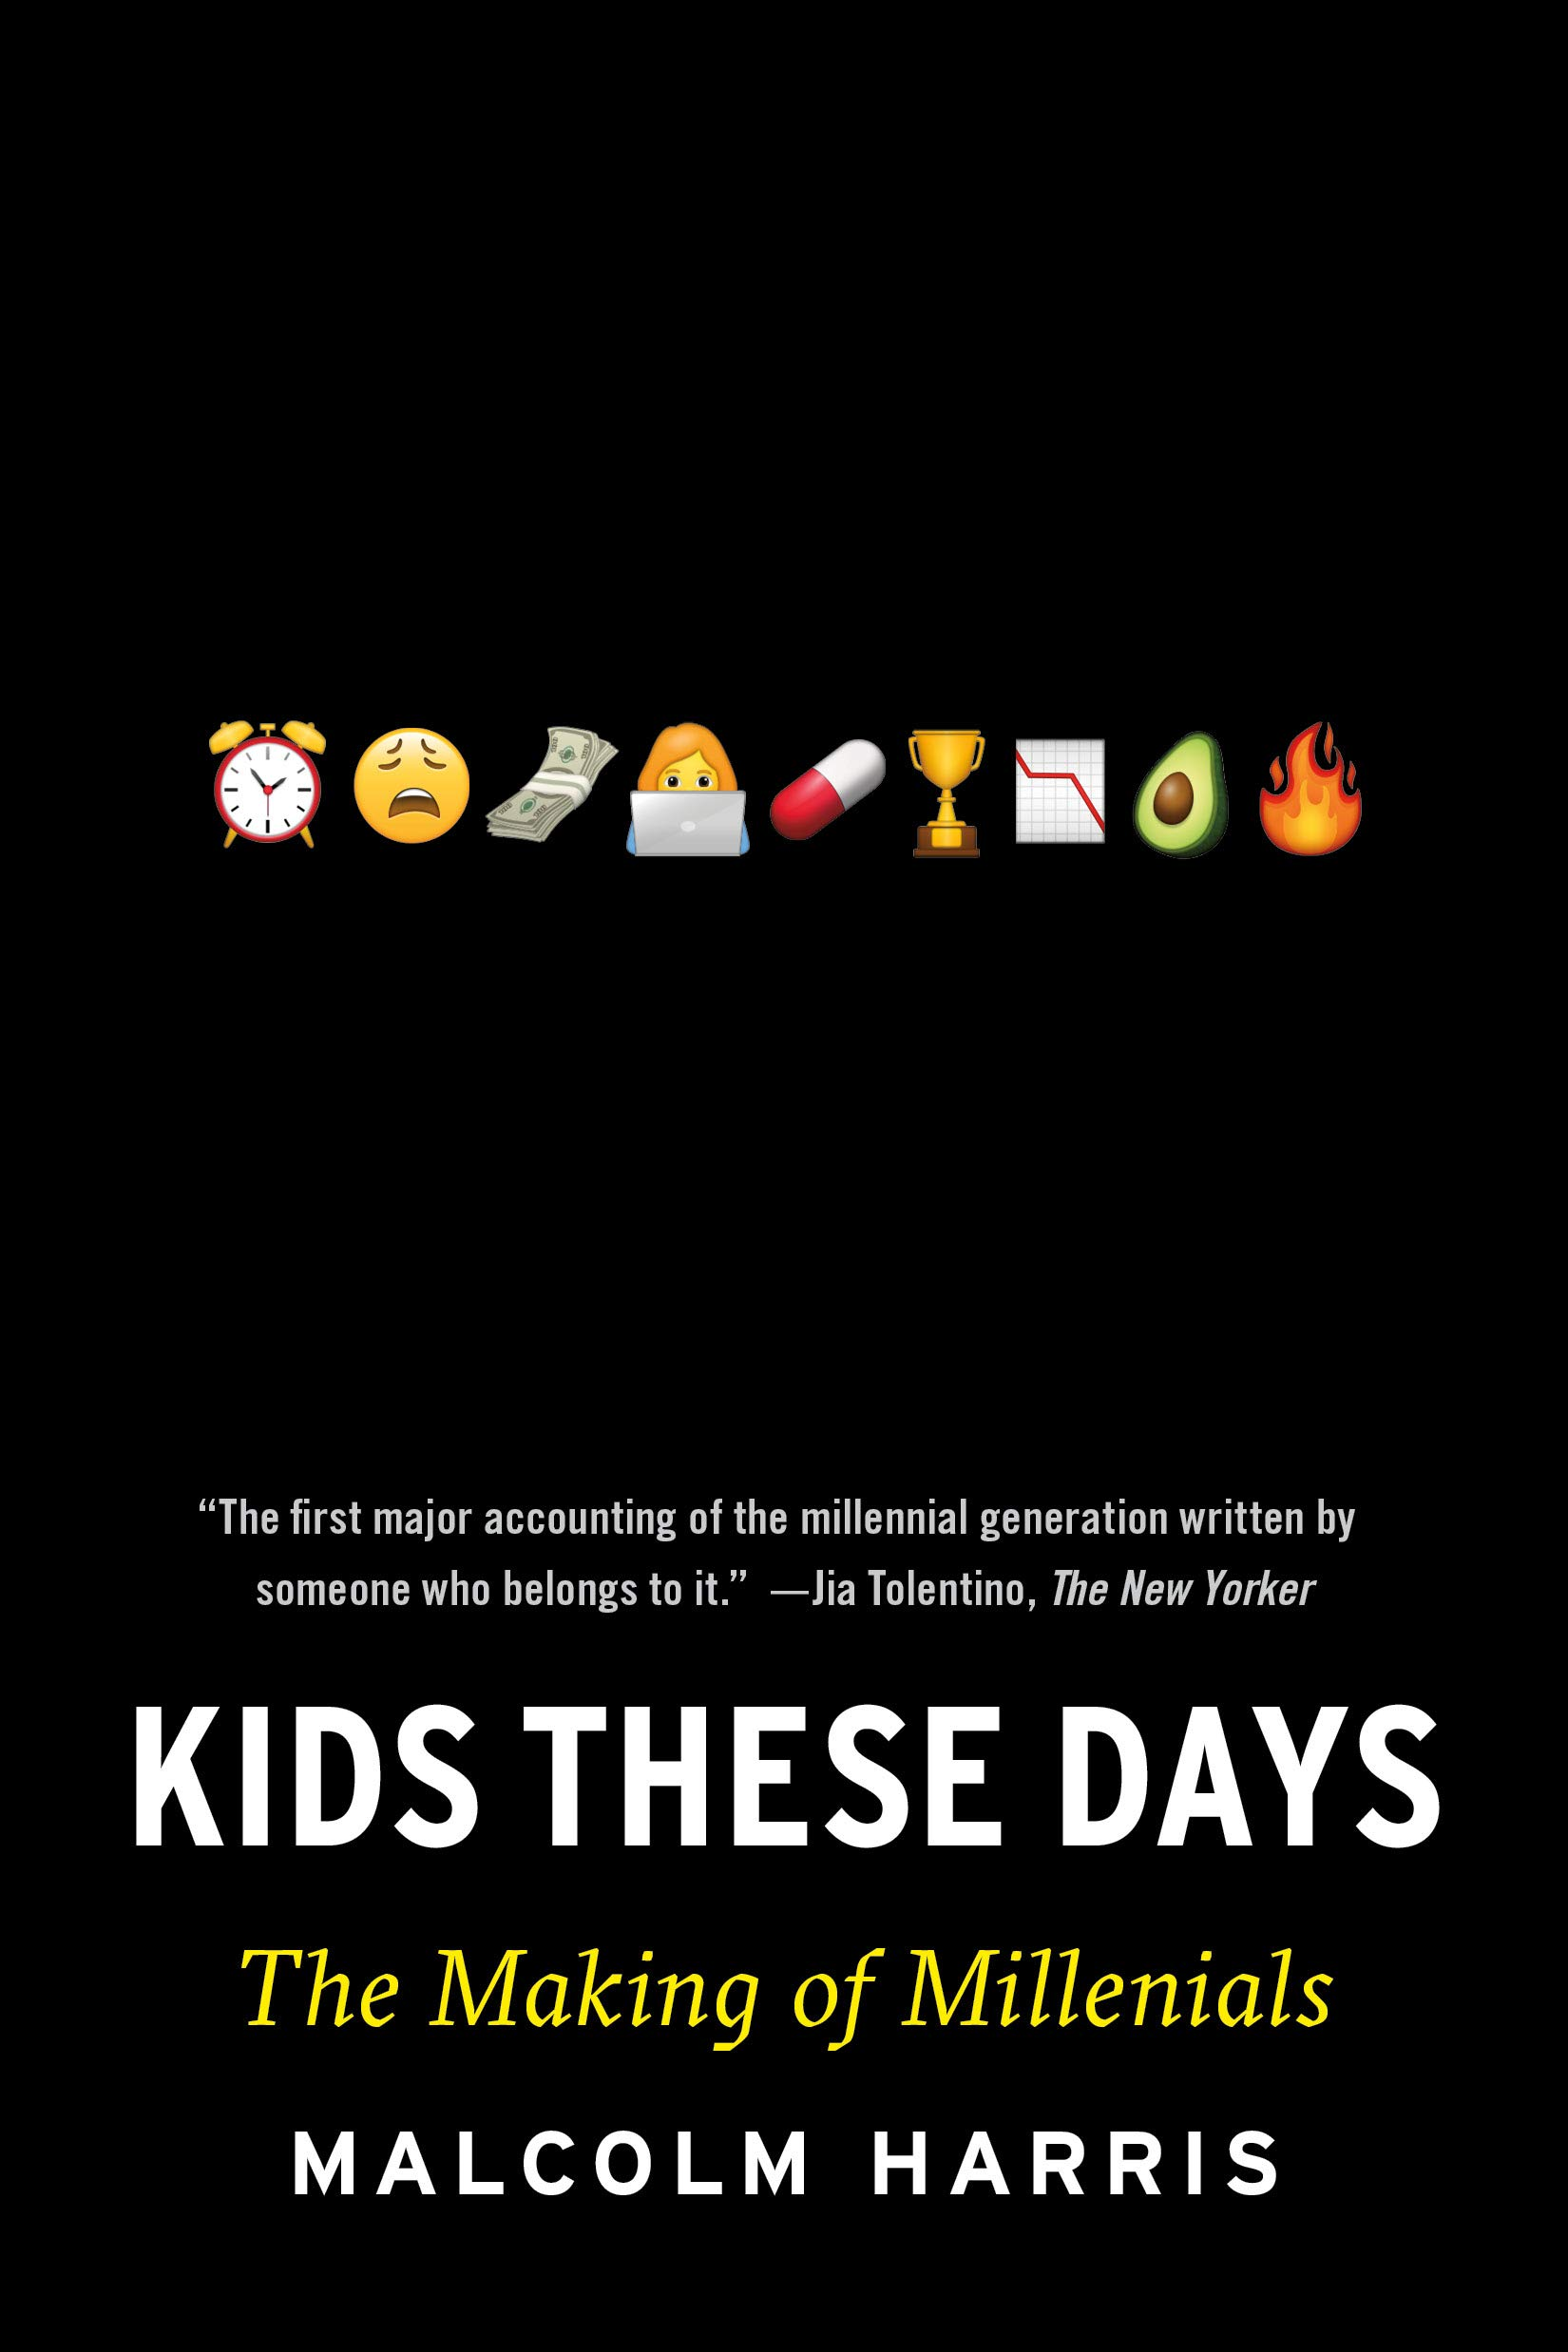 'Kids These Days: Human Capital and the Making of Millennials' by Malcolm Harris